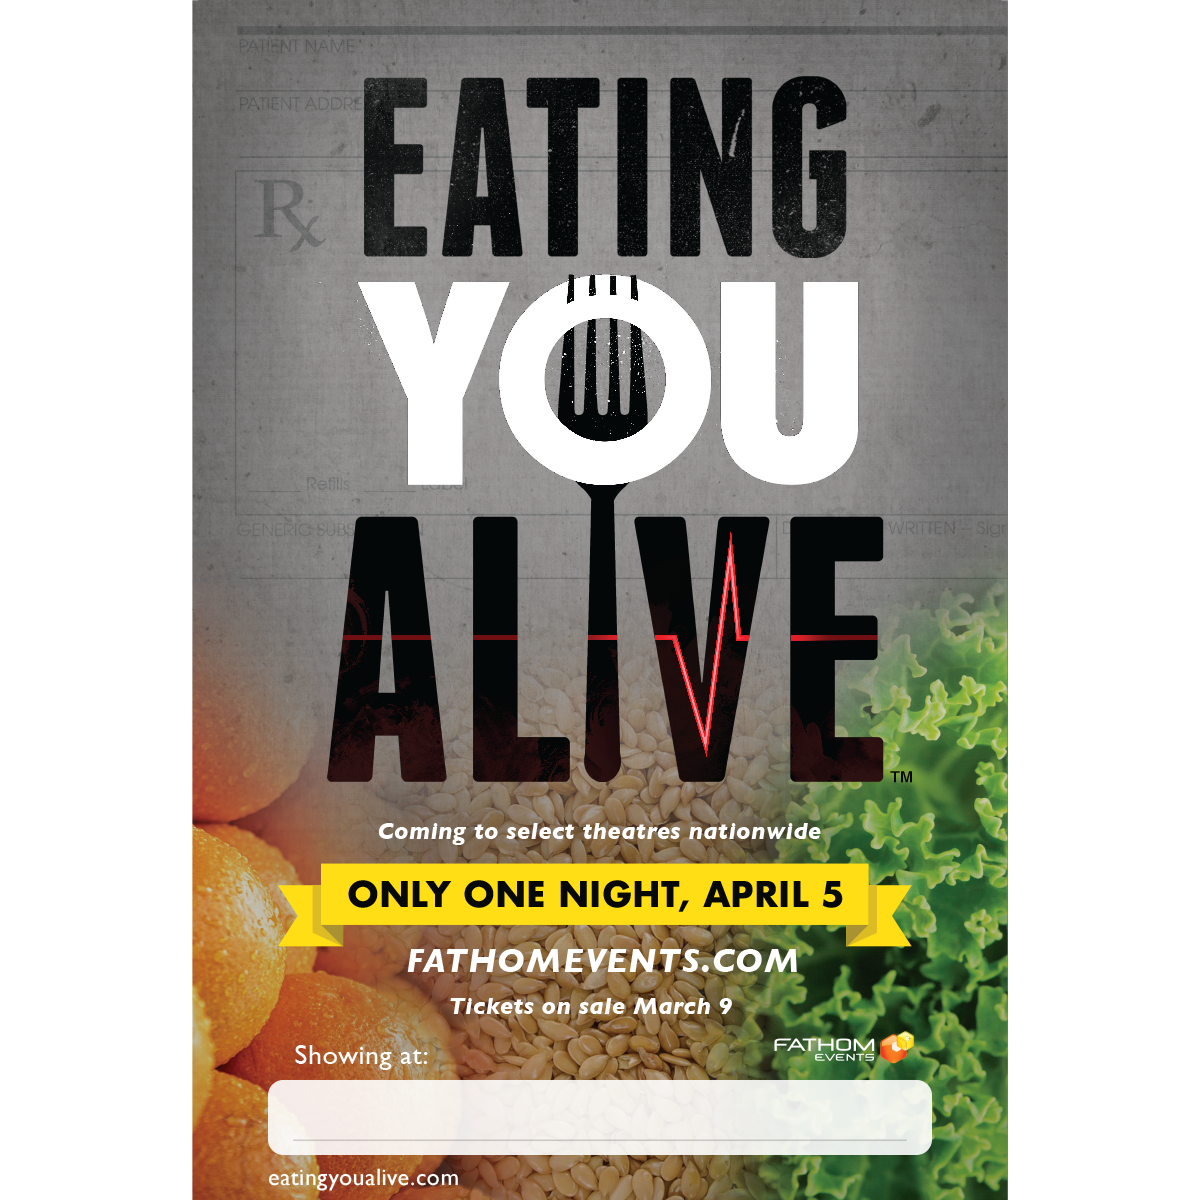 Eating_You_Alive_Flyers 5.5x8.5_march9.png